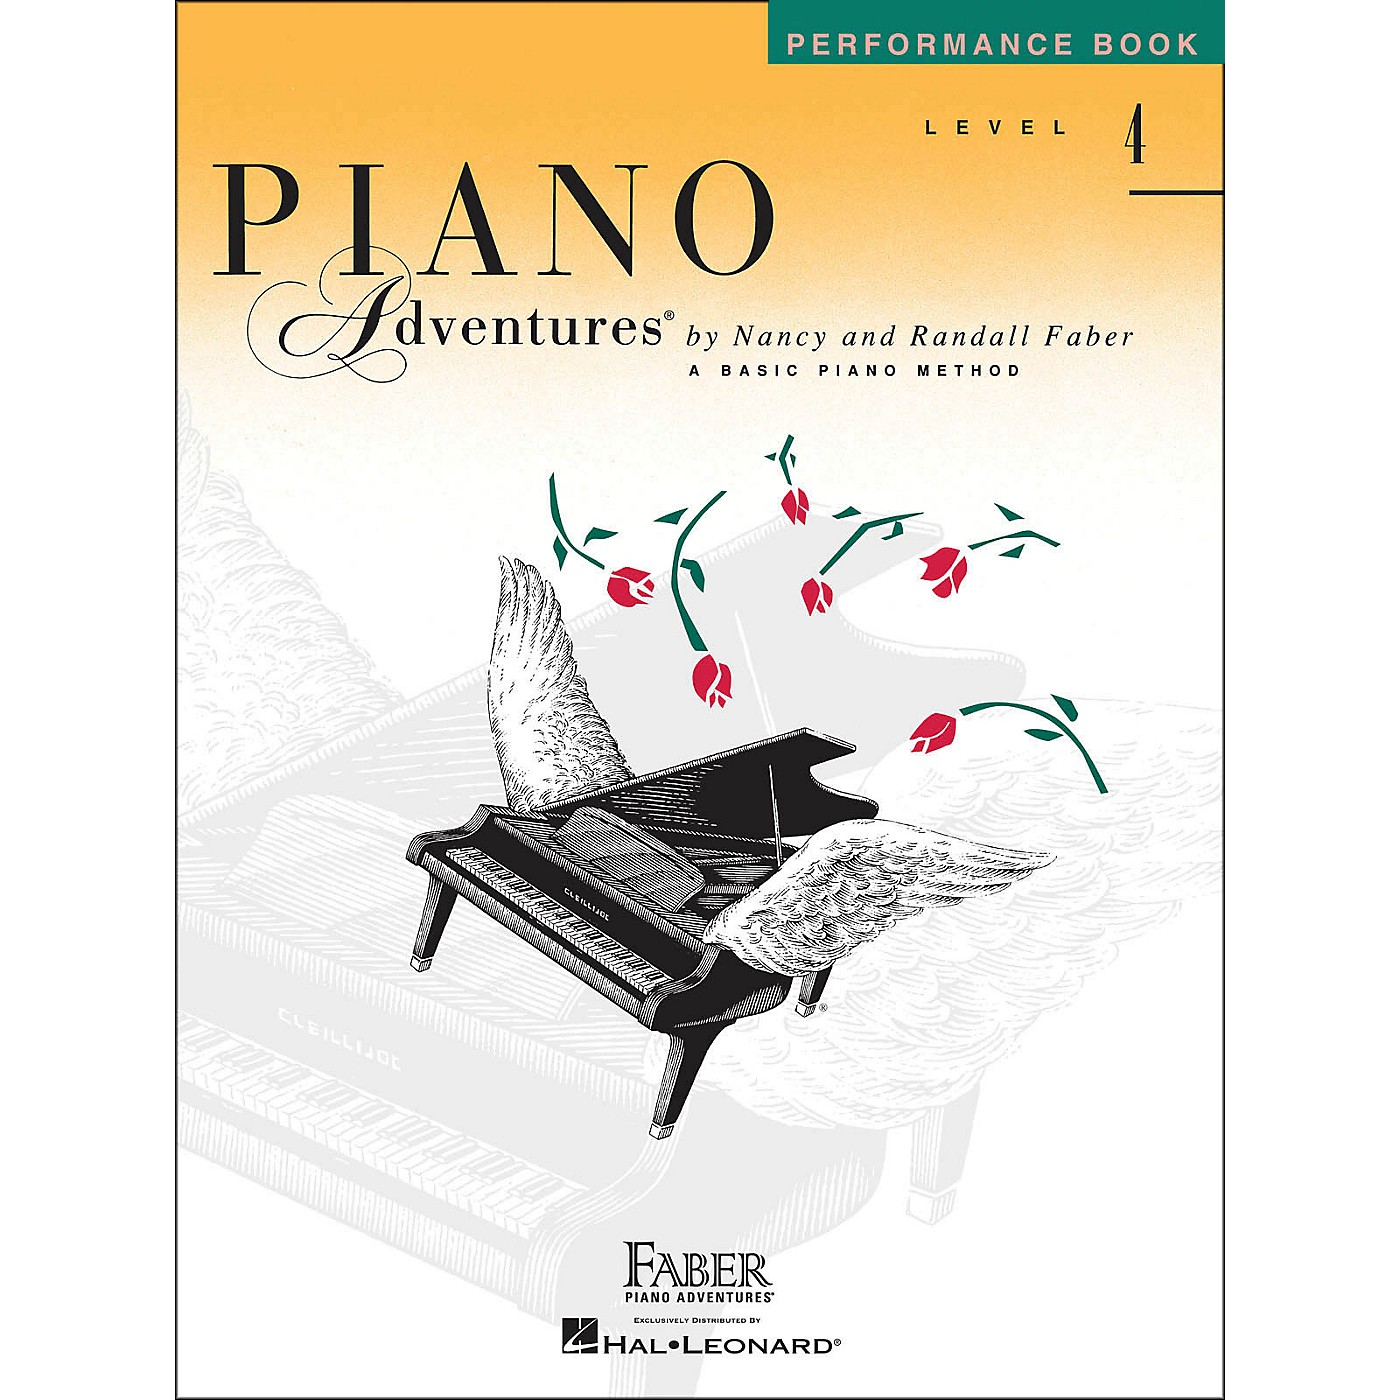 Faber Piano Adventures Piano Adventures Performance Book Level 4 thumbnail